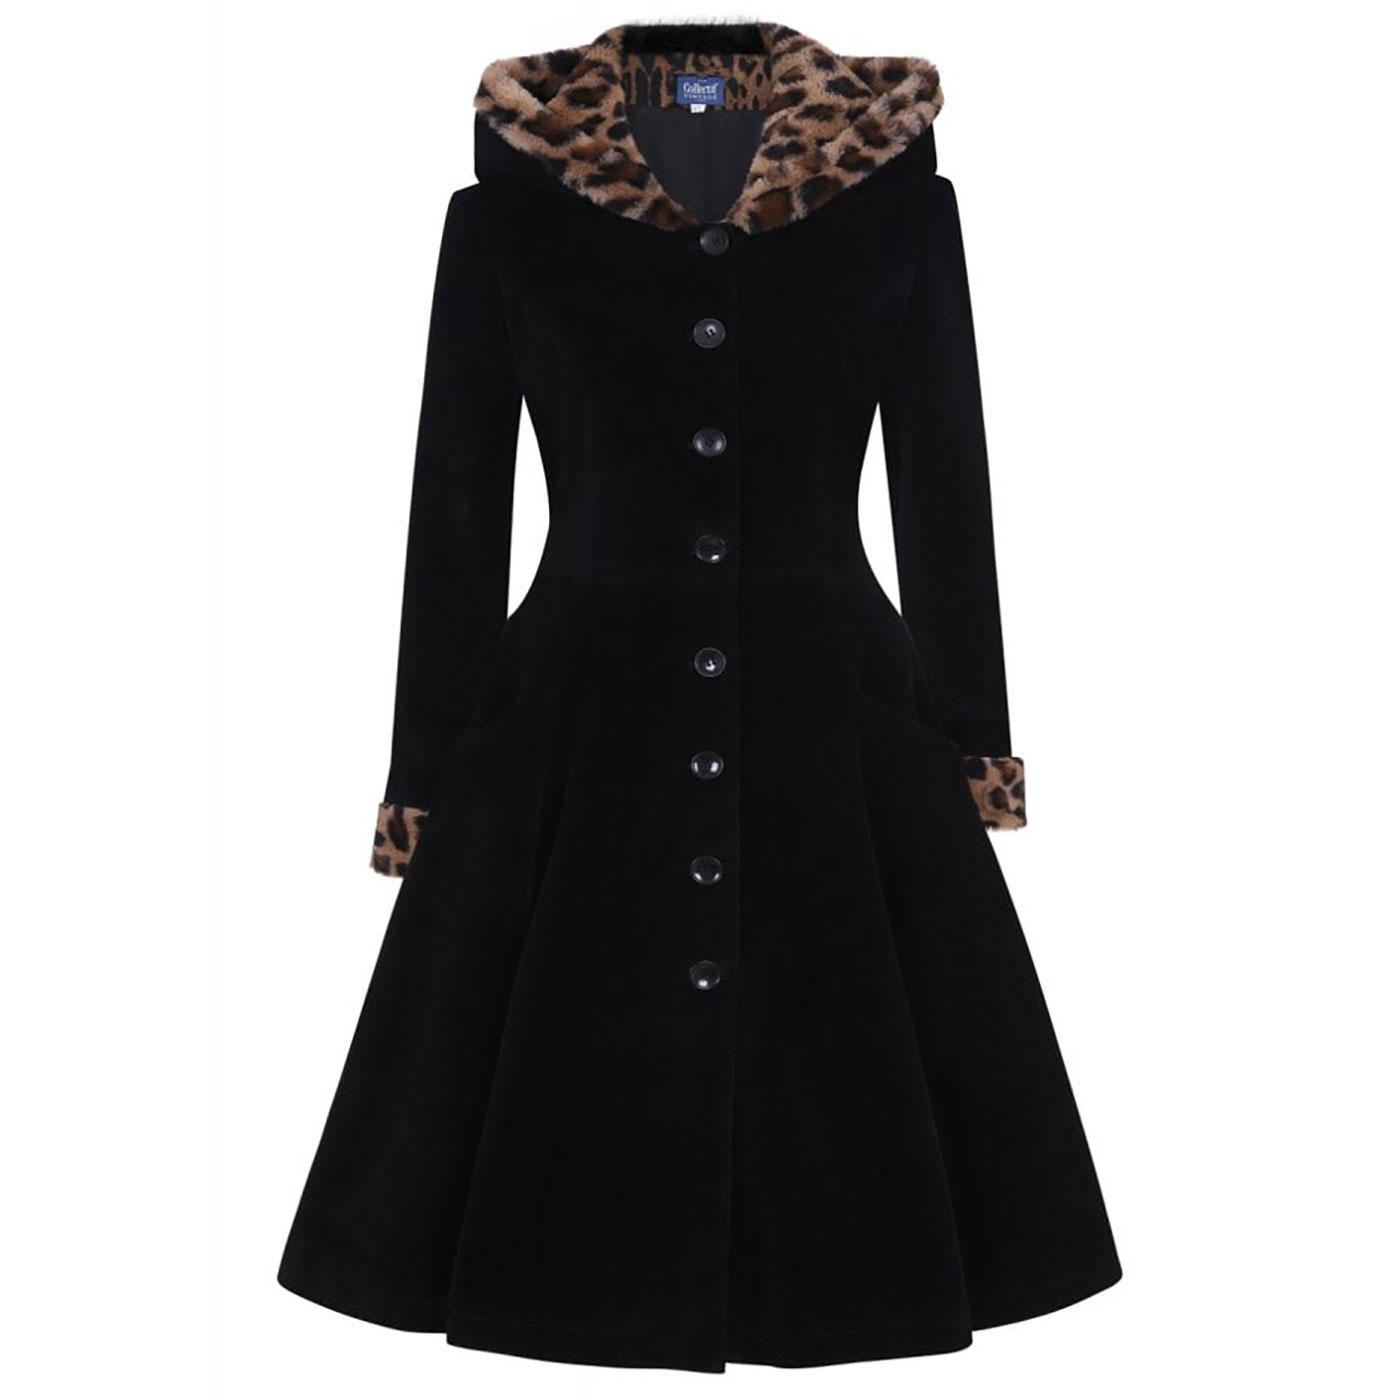 Hazel COLLECTIF Leopard Print Winter Swing Coat